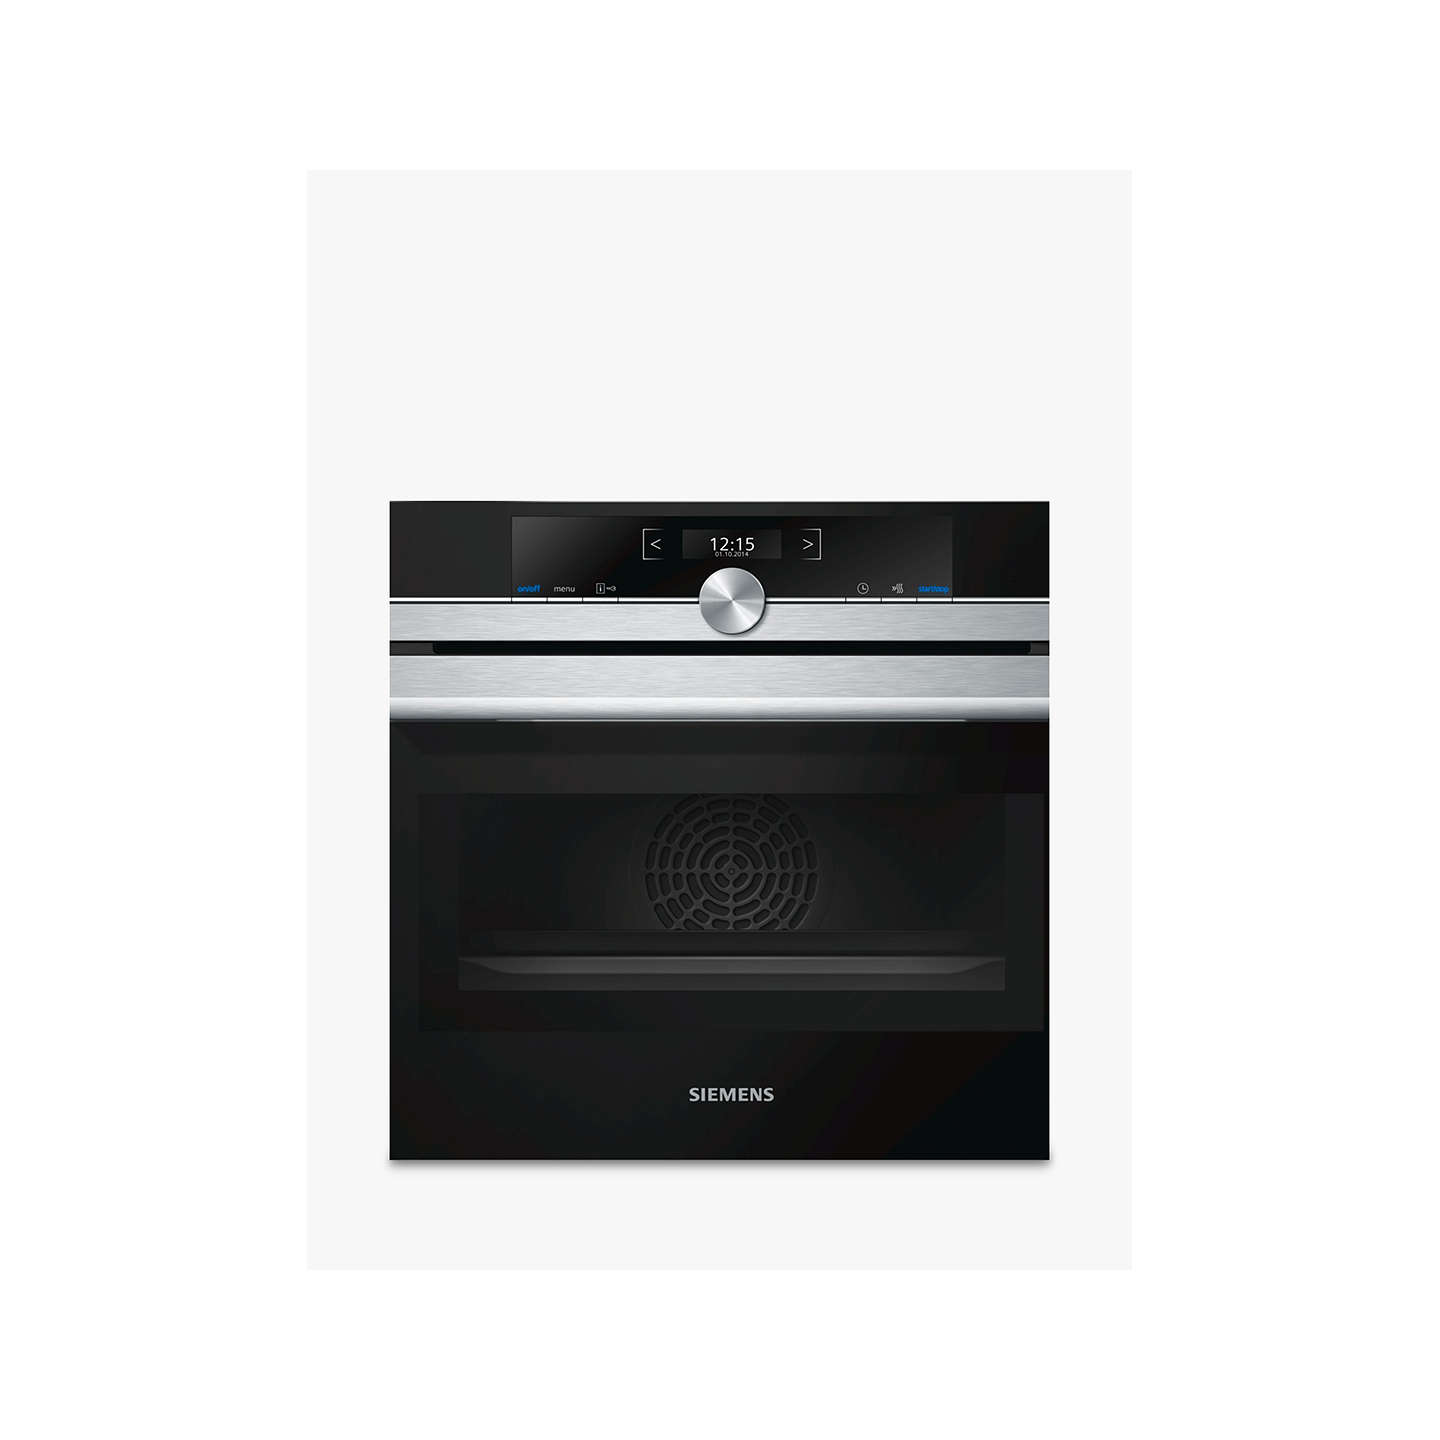 Siemens CM633GBS1B Built-In Compact Oven with Microwave, Stainless ...